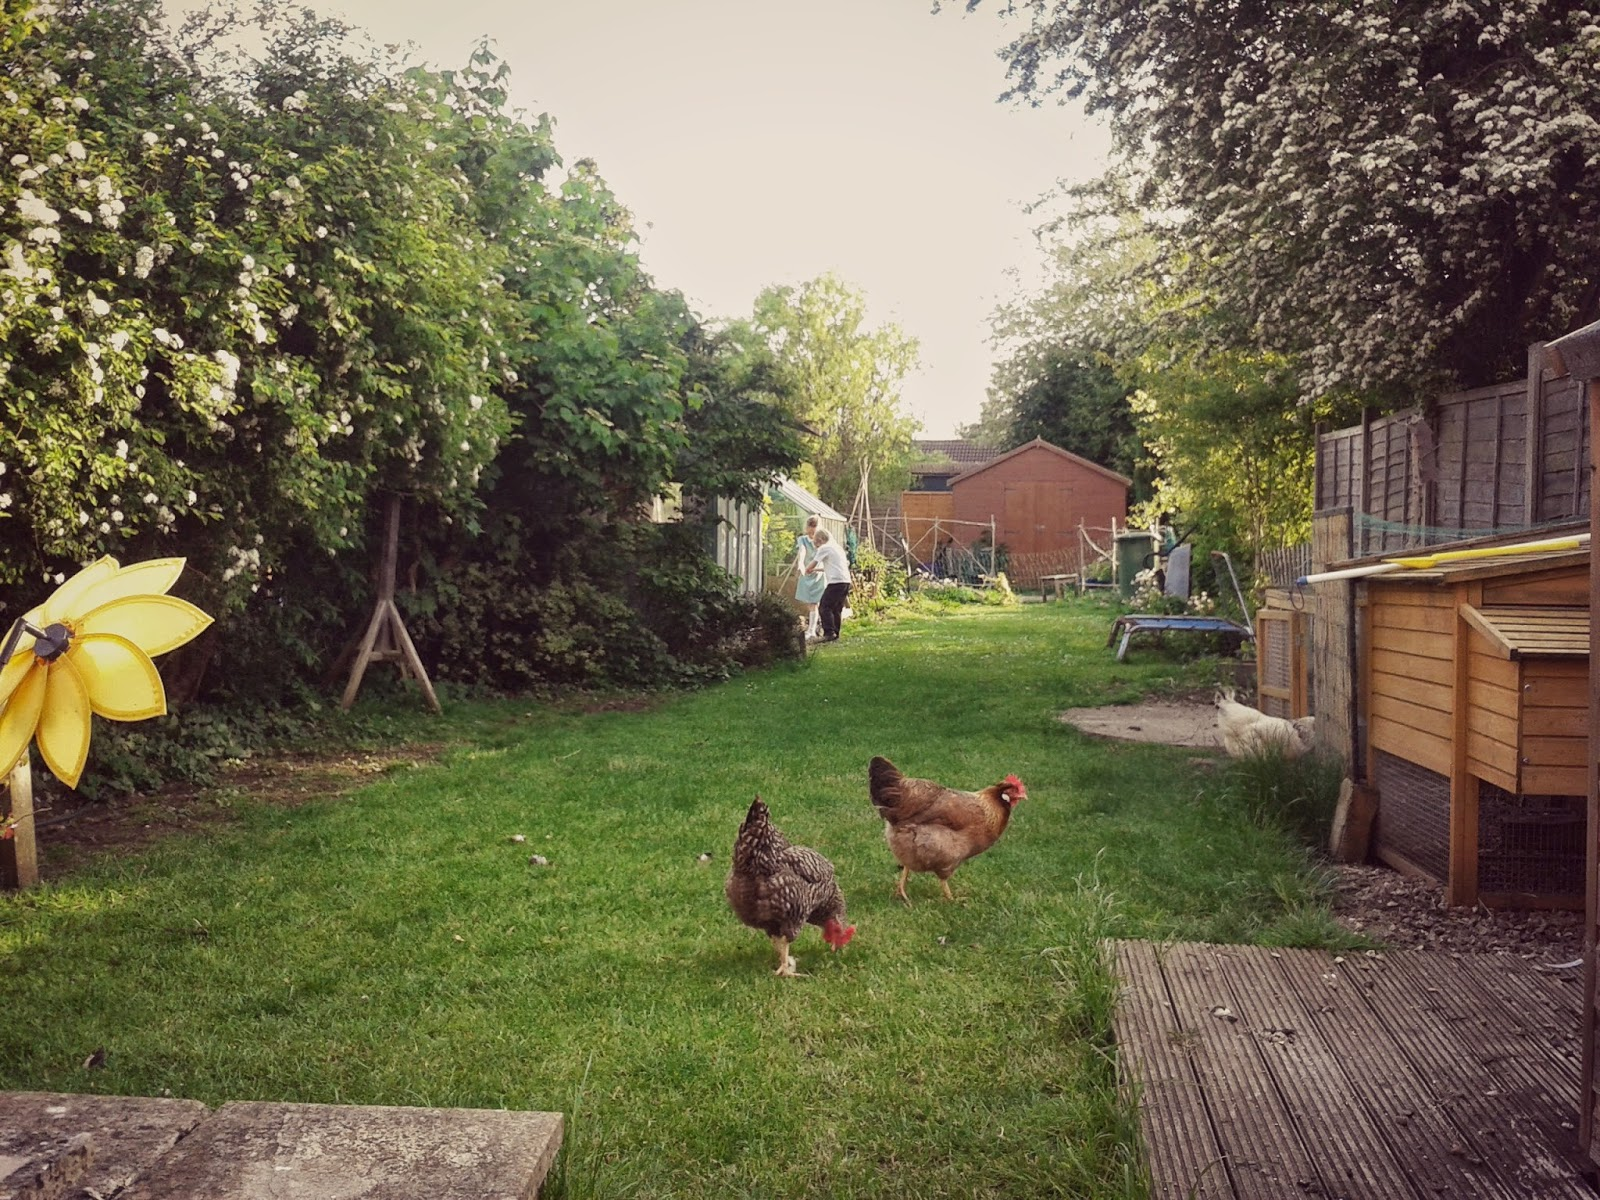 Project 365 day 136 - Chickens at play // 76sunflowers